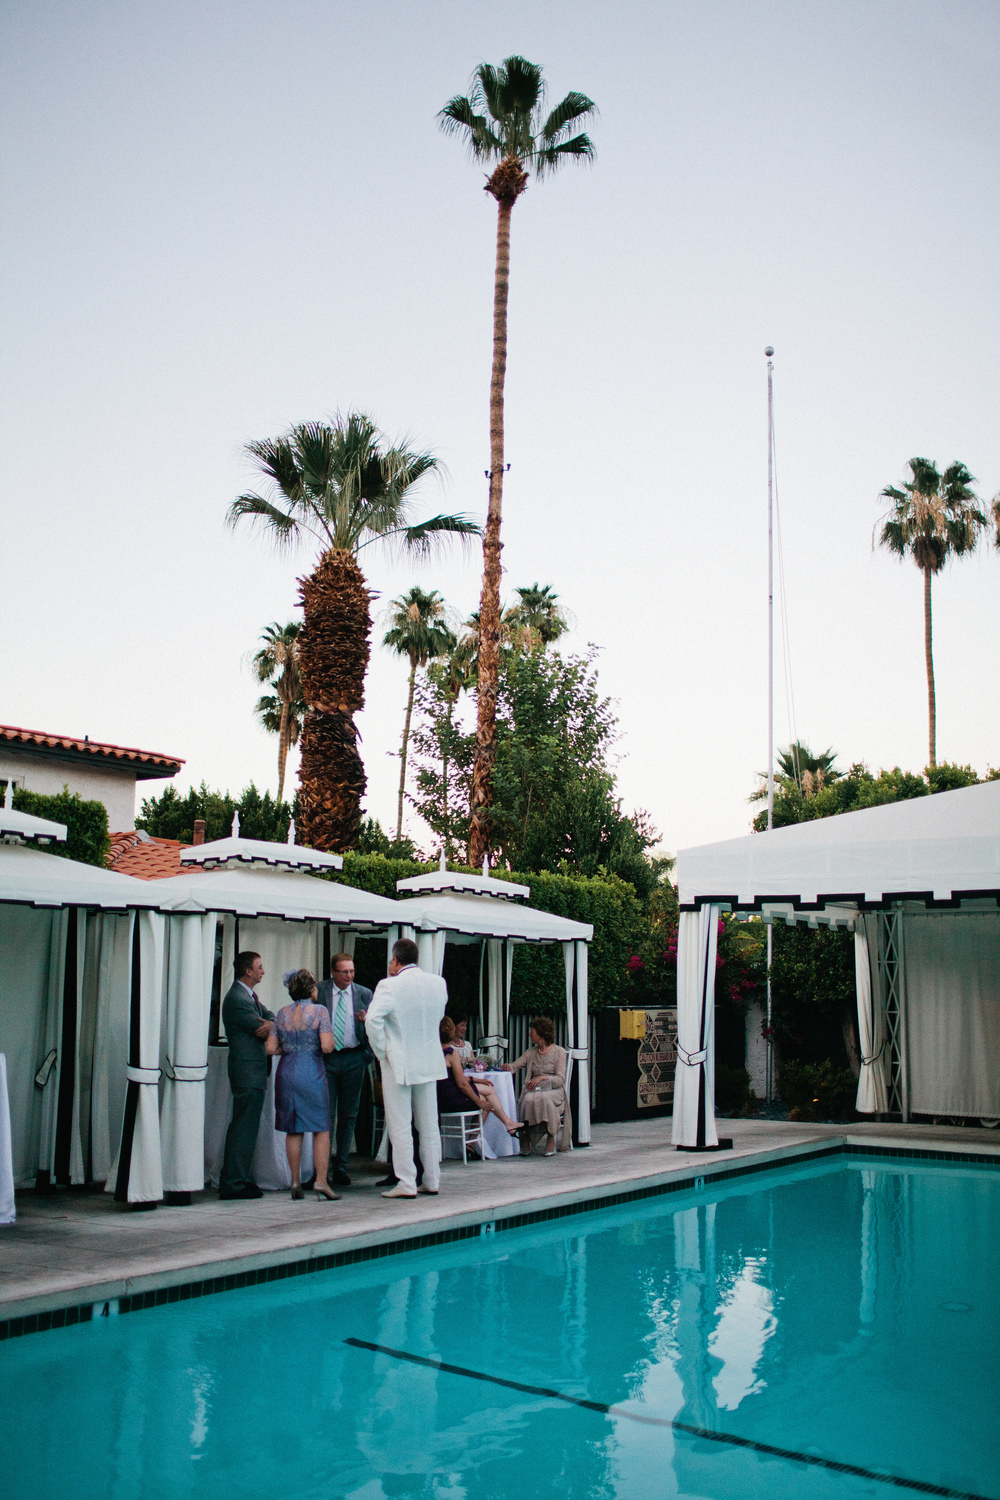 viceroy-hotel-palm-springs-ace-hotel-wedding-photographer.jpg